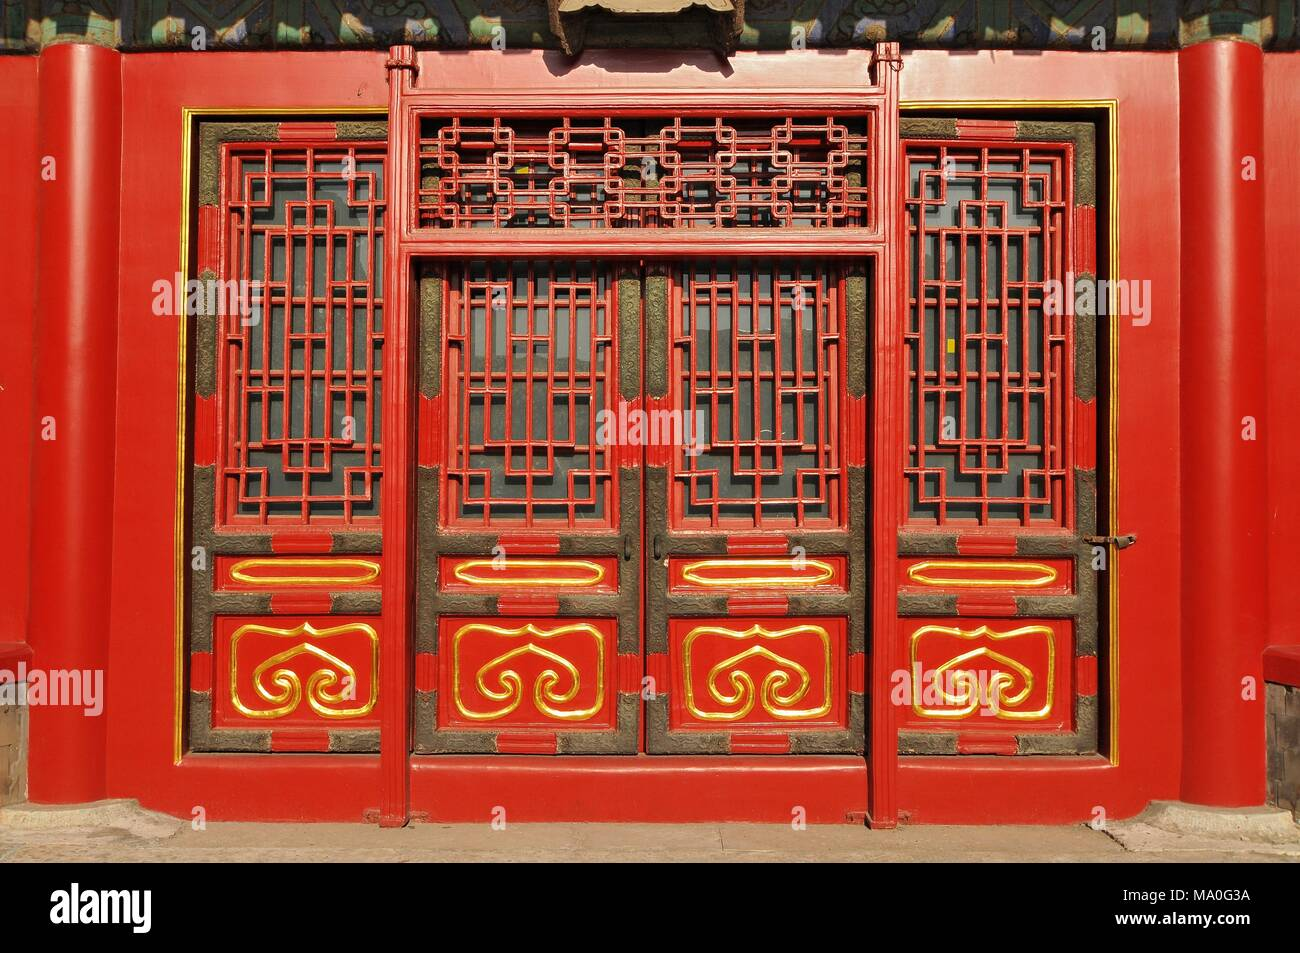 Traditional Chinese doors in The Palace Museum (Forbidden City) located in Beijing China.  sc 1 st  Alamy & Traditional Chinese doors in The Palace Museum (Forbidden City ...